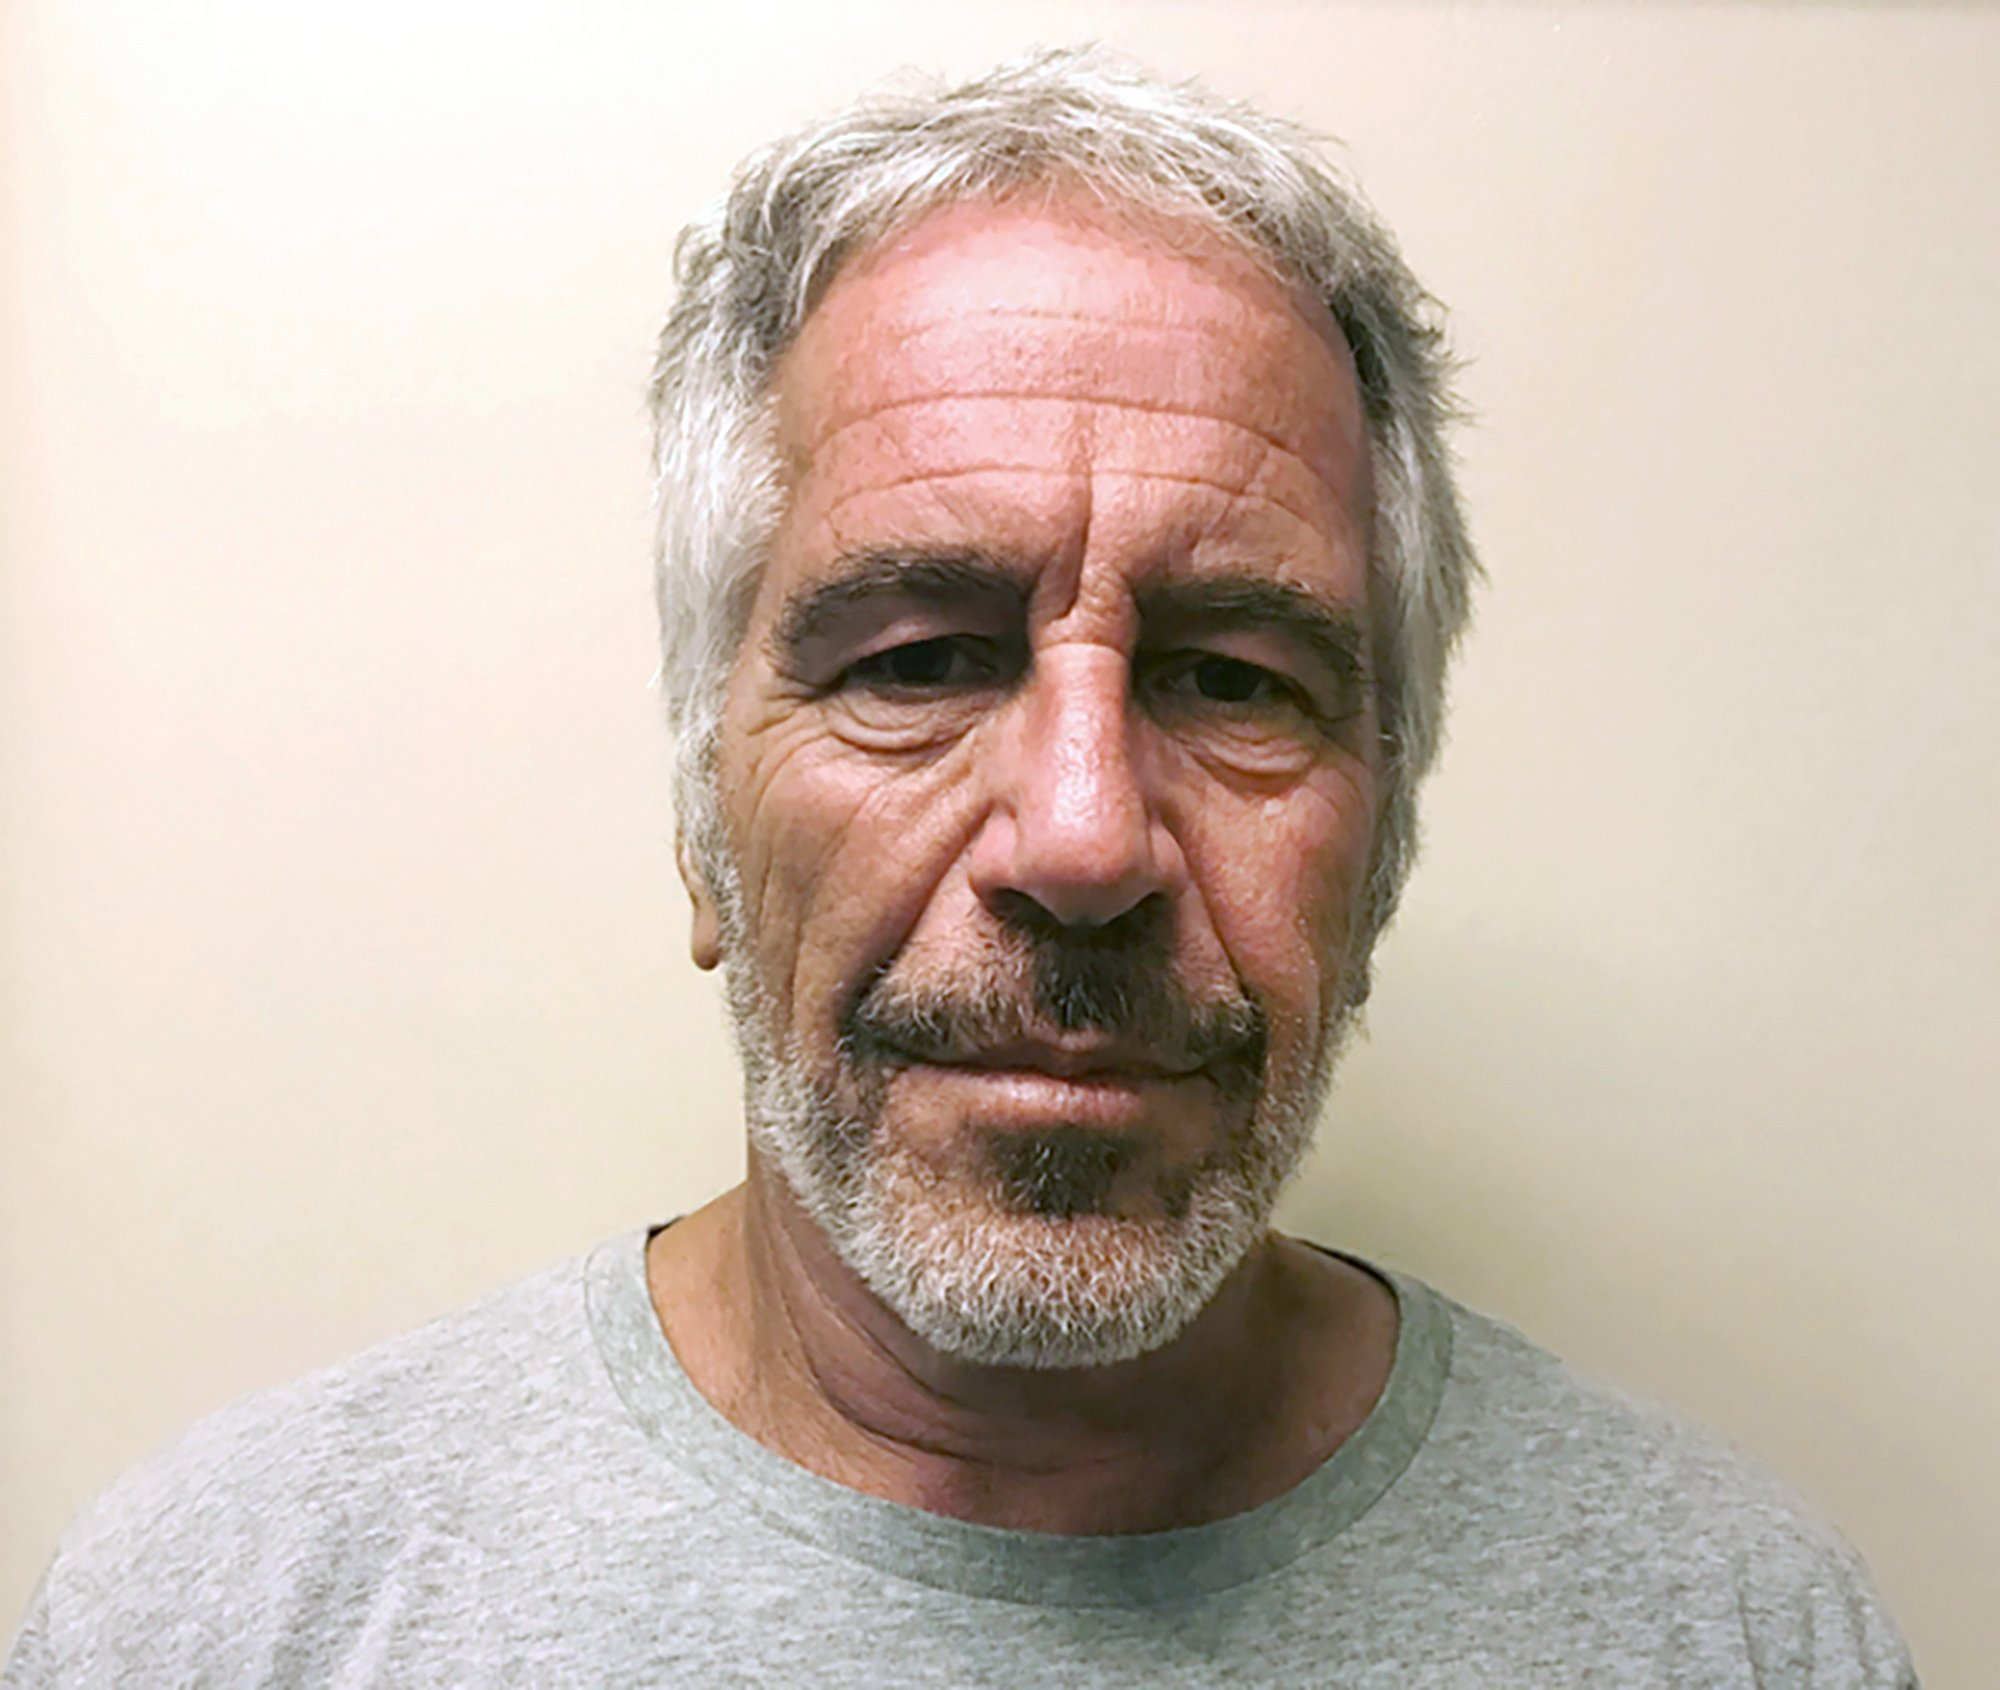 AP Exclusive: Feds plan to move Epstein warden to prison job